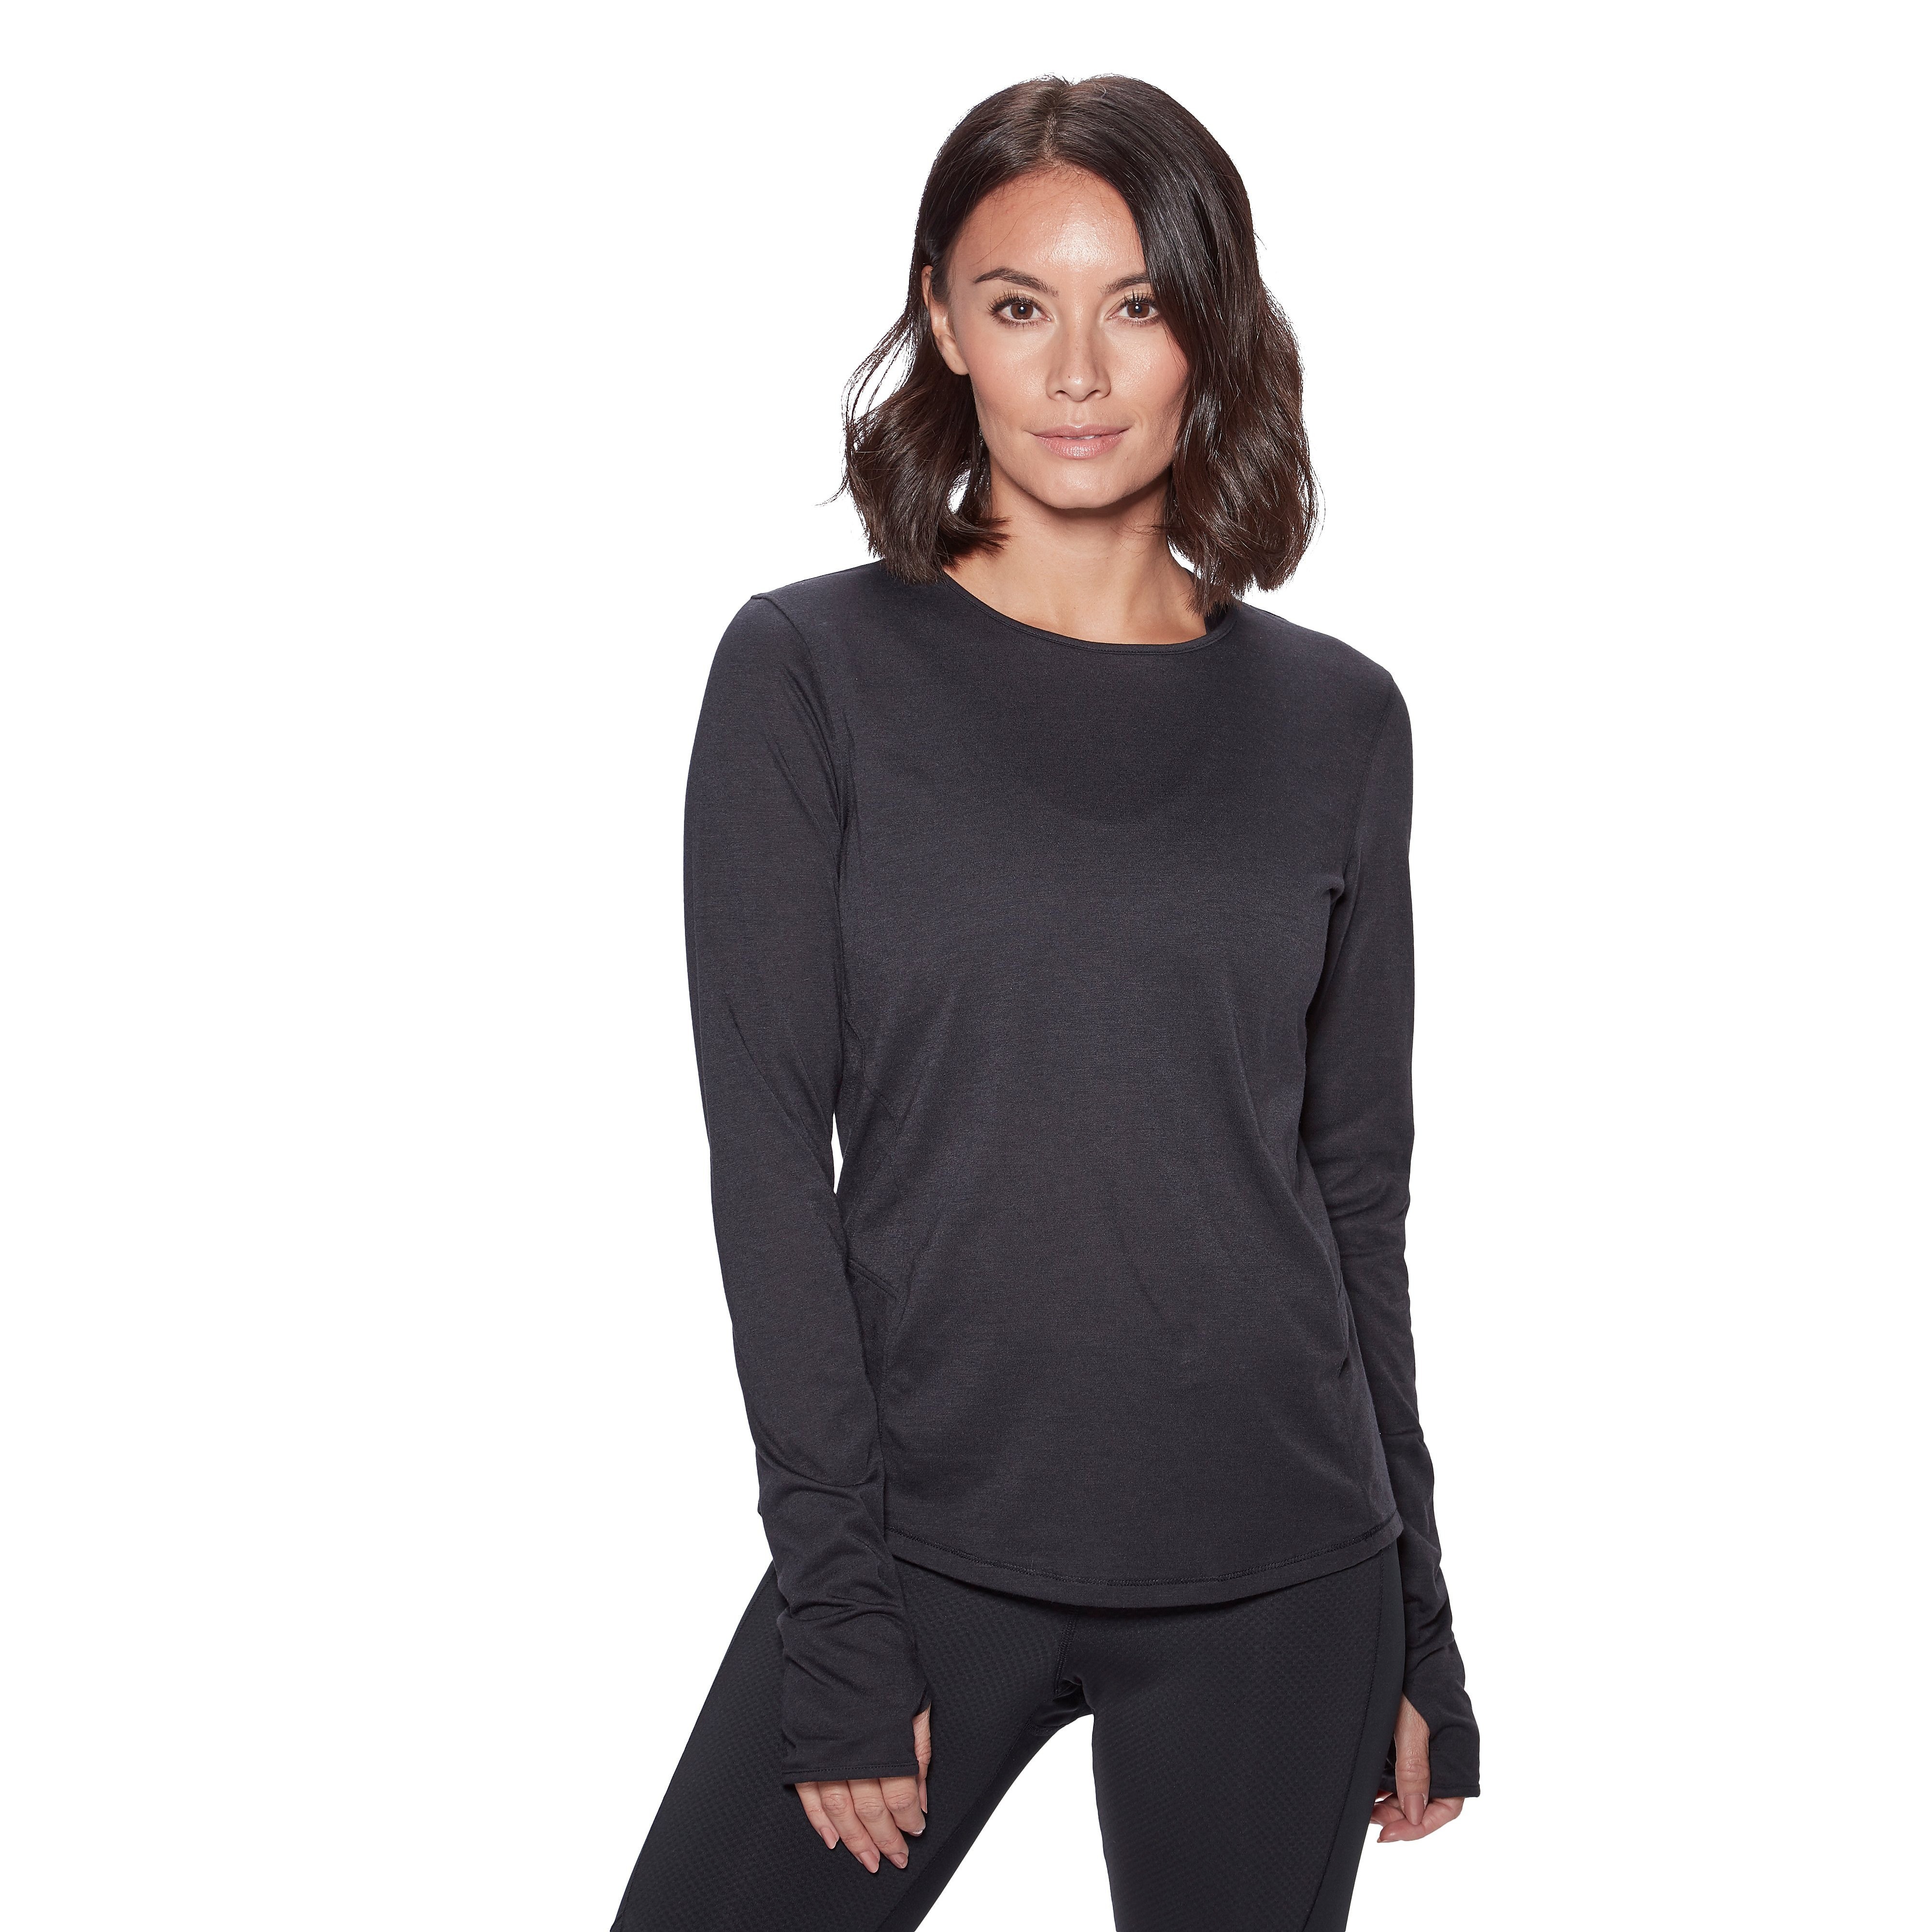 Under Armour Swyft Long Sleeves Women's Top